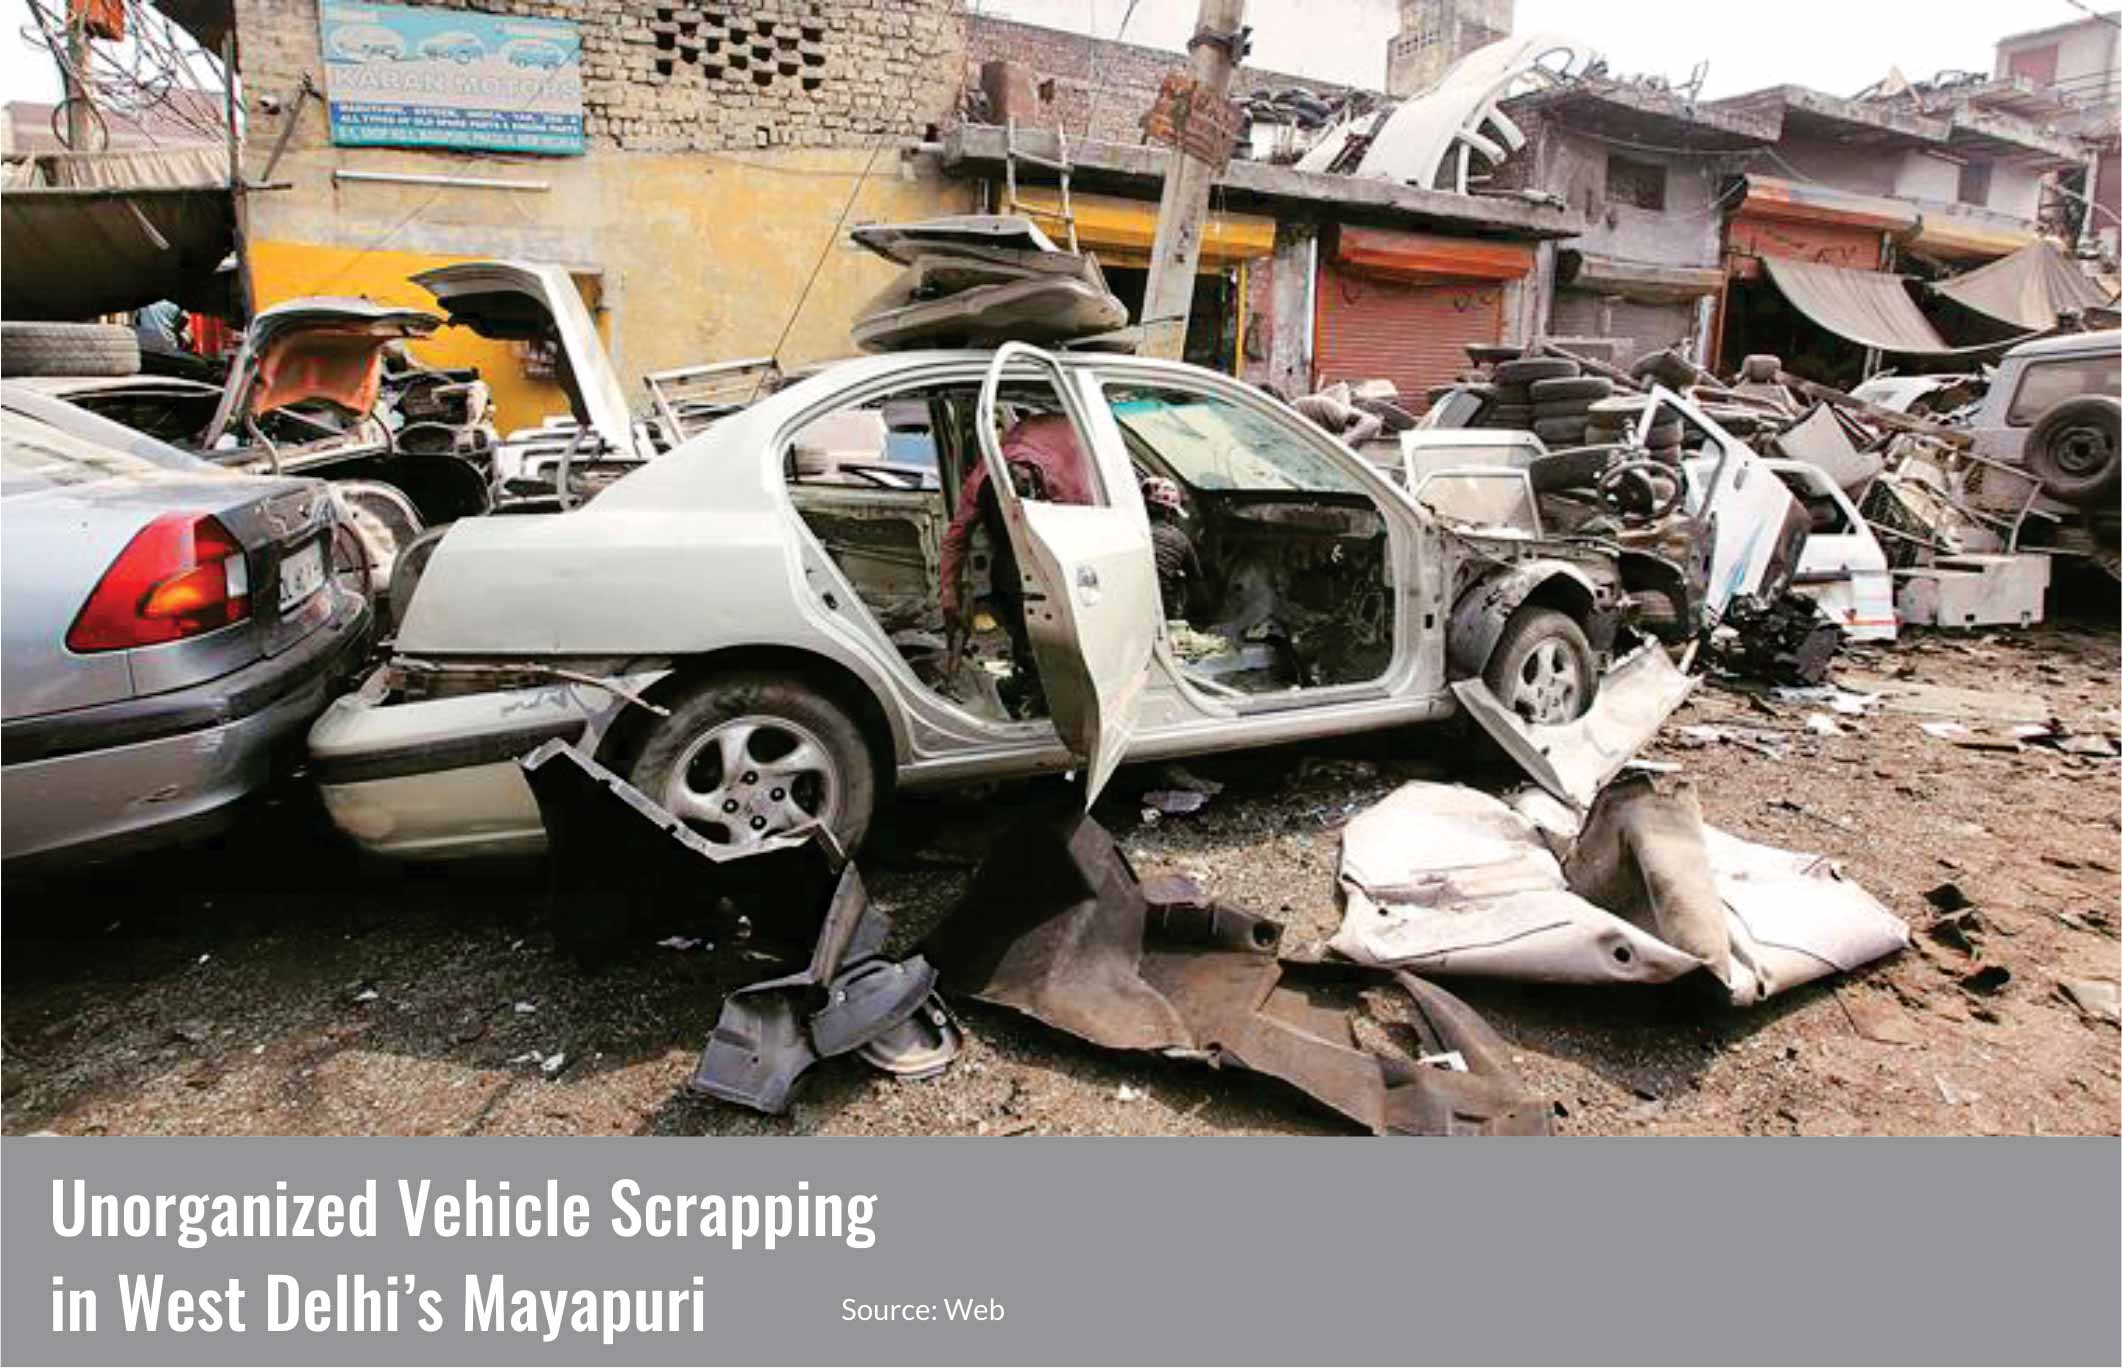 VEHICLE RECYCLING IN INDIA A Multi-Billion Dollar Opportunity? -